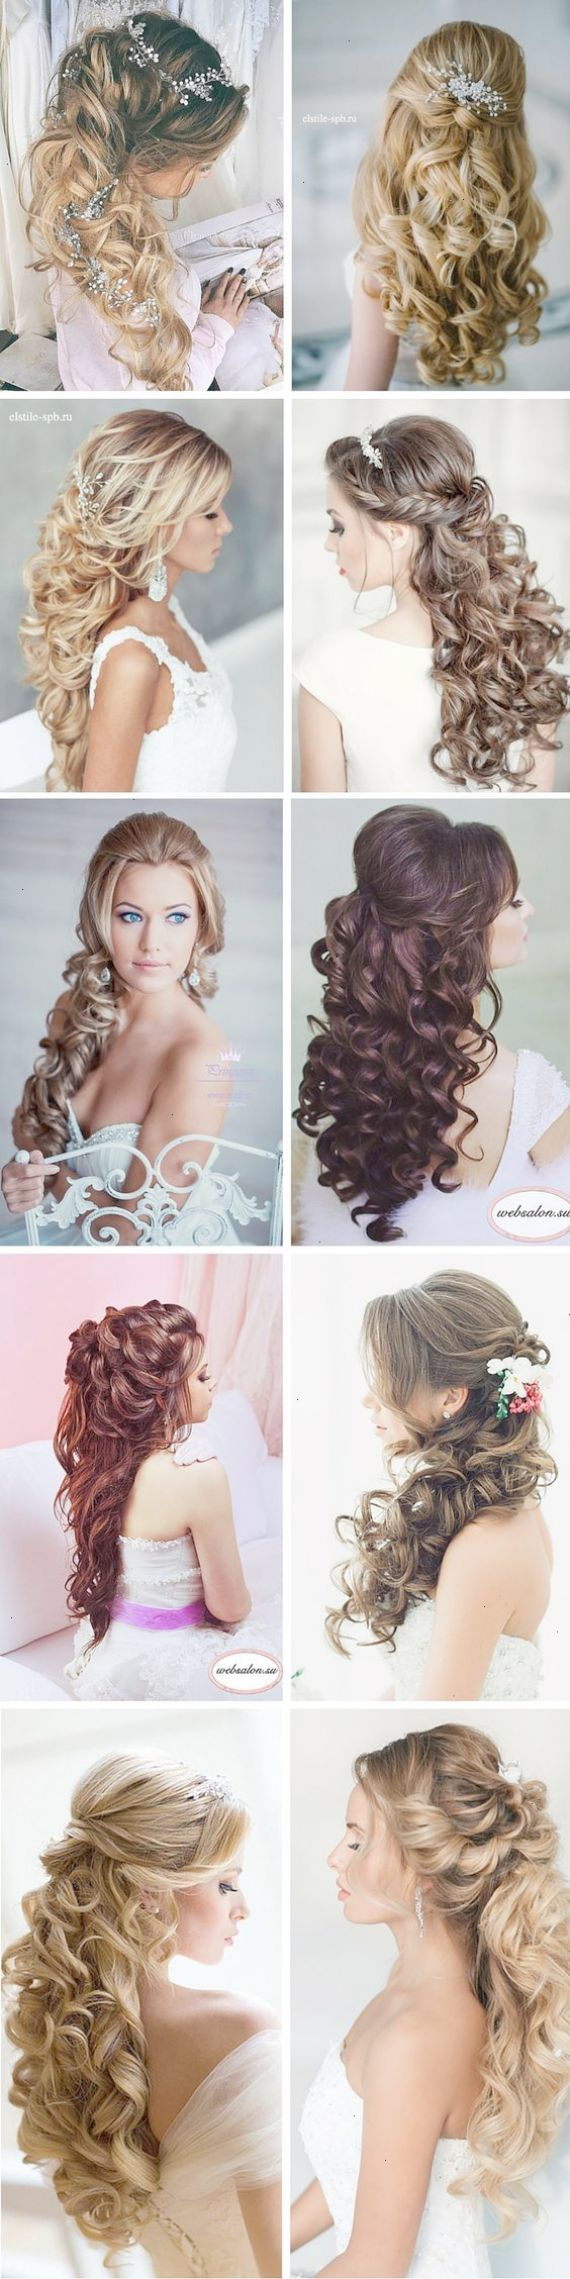 best half up curly hair images on pinterest wedding hairstyle